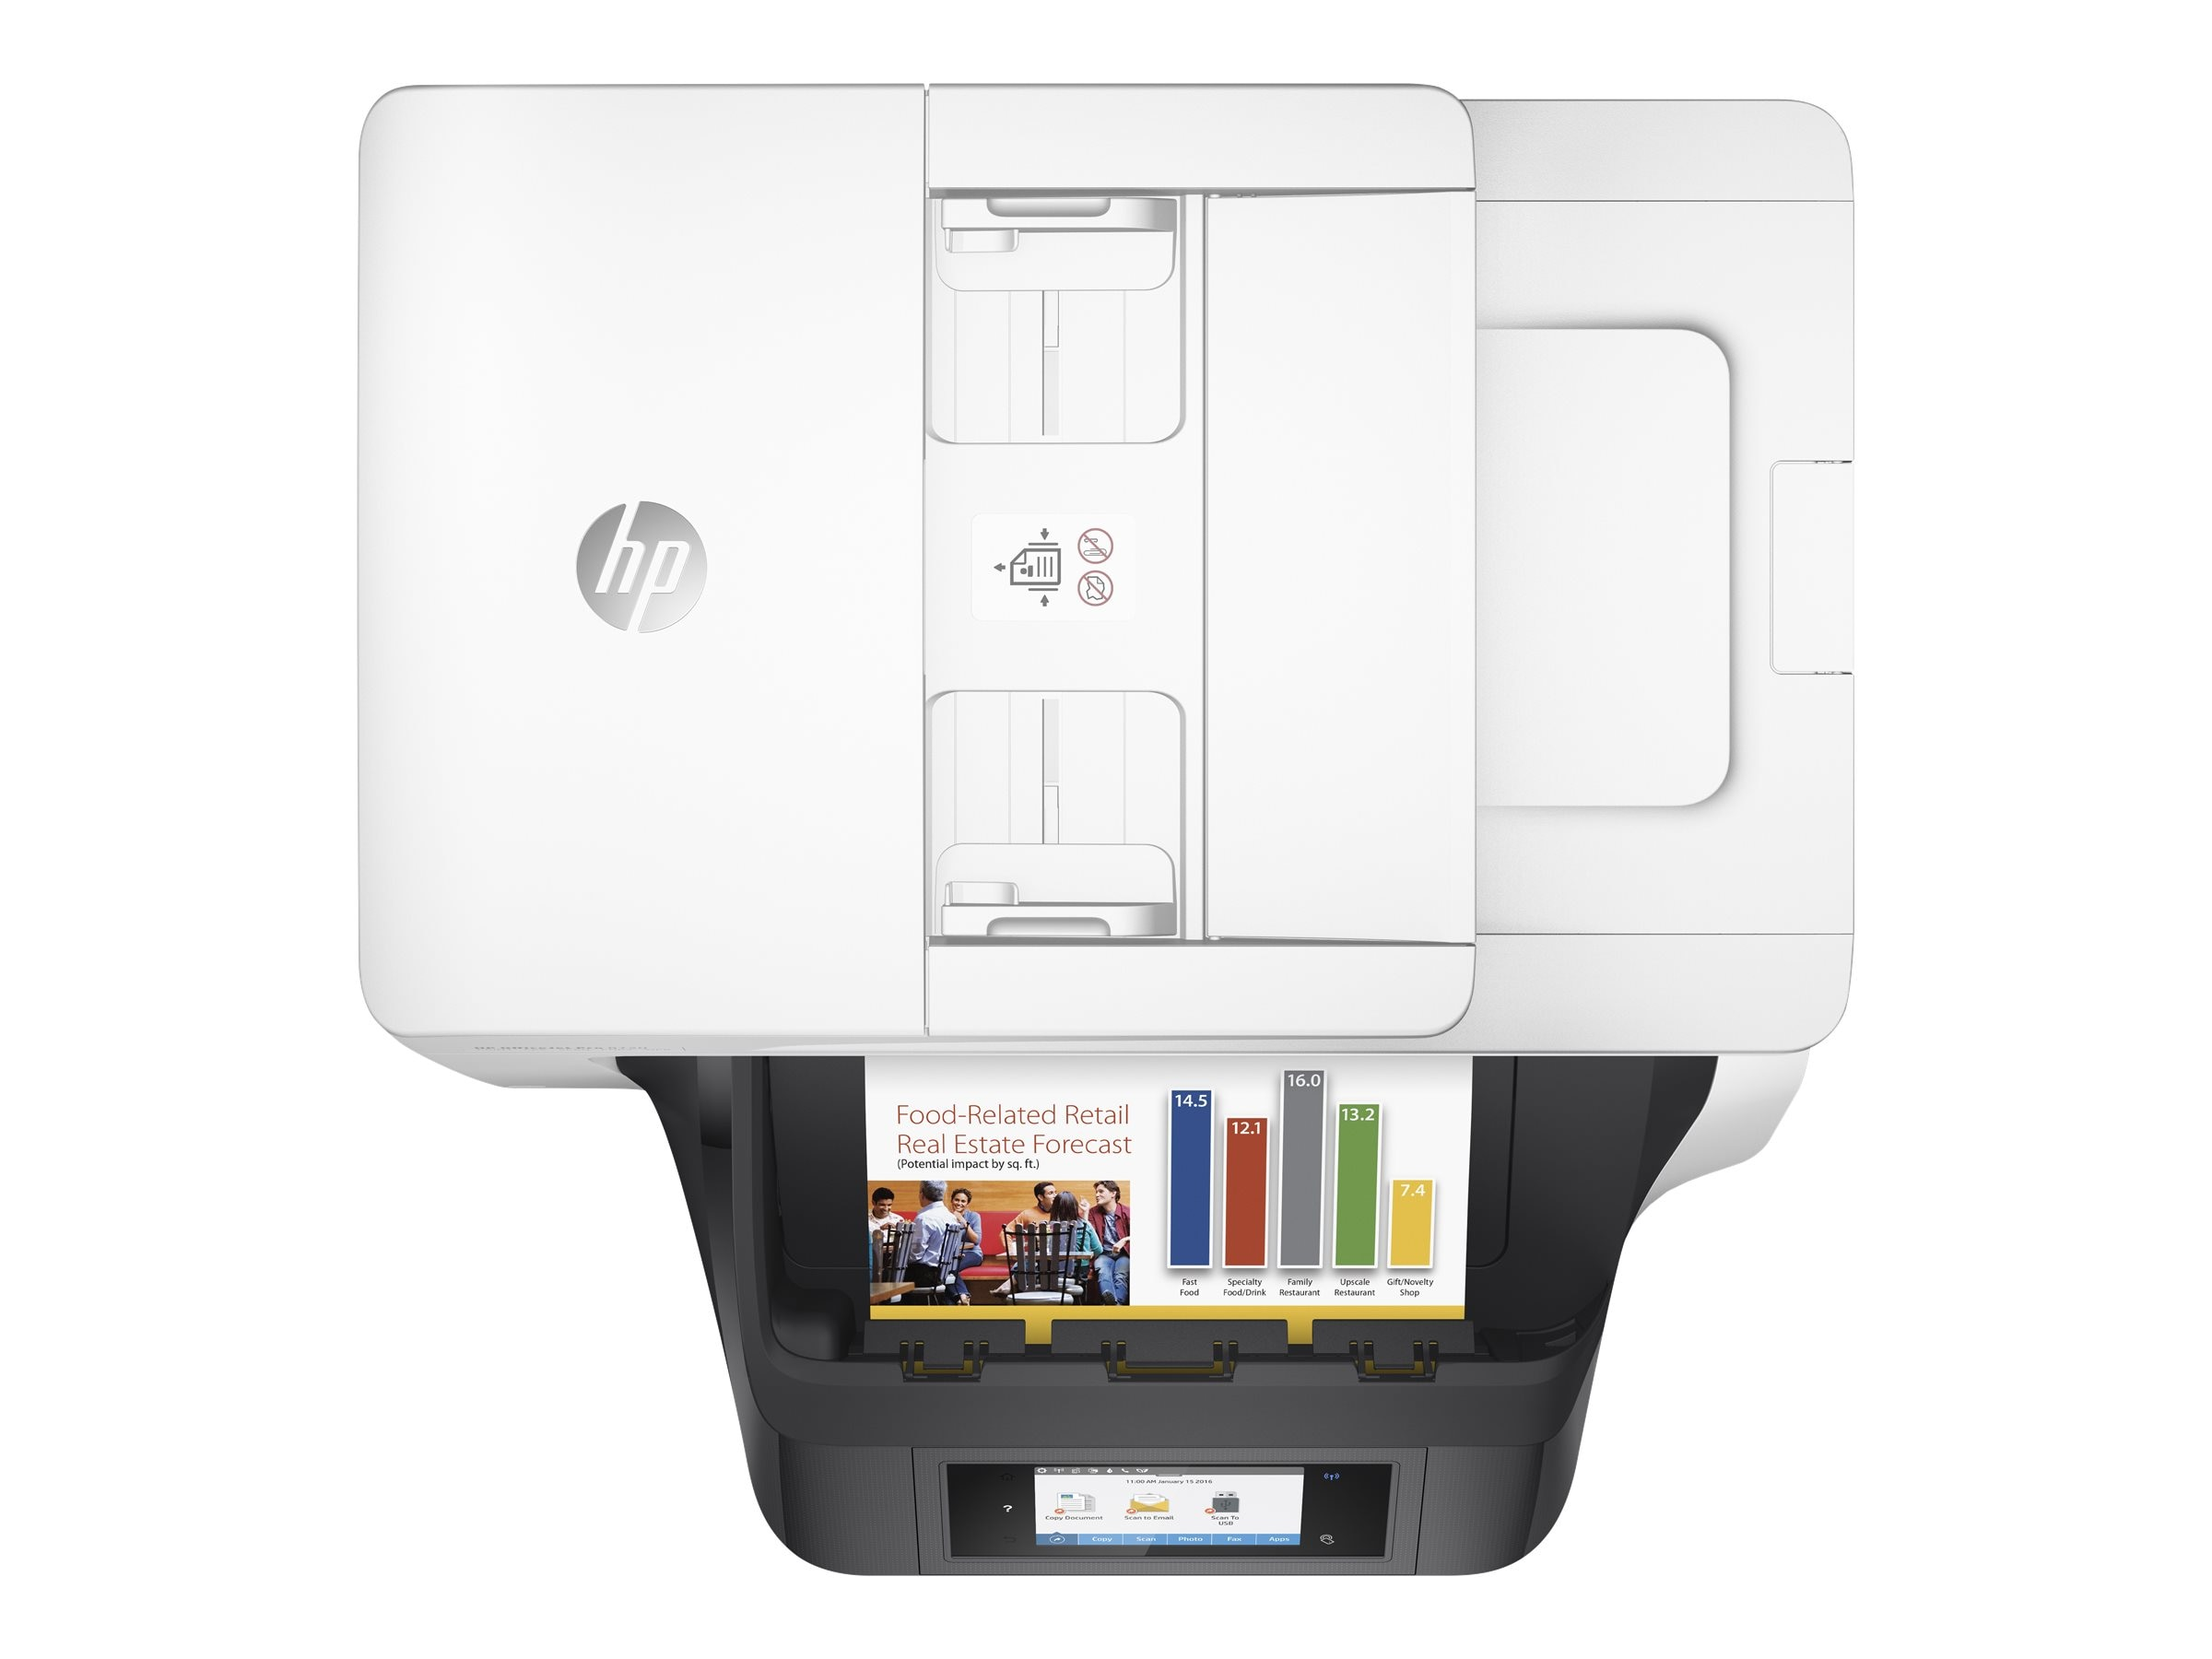 HP Officejet Pro 8720 All-In-One Printer, M9L75A#B1H